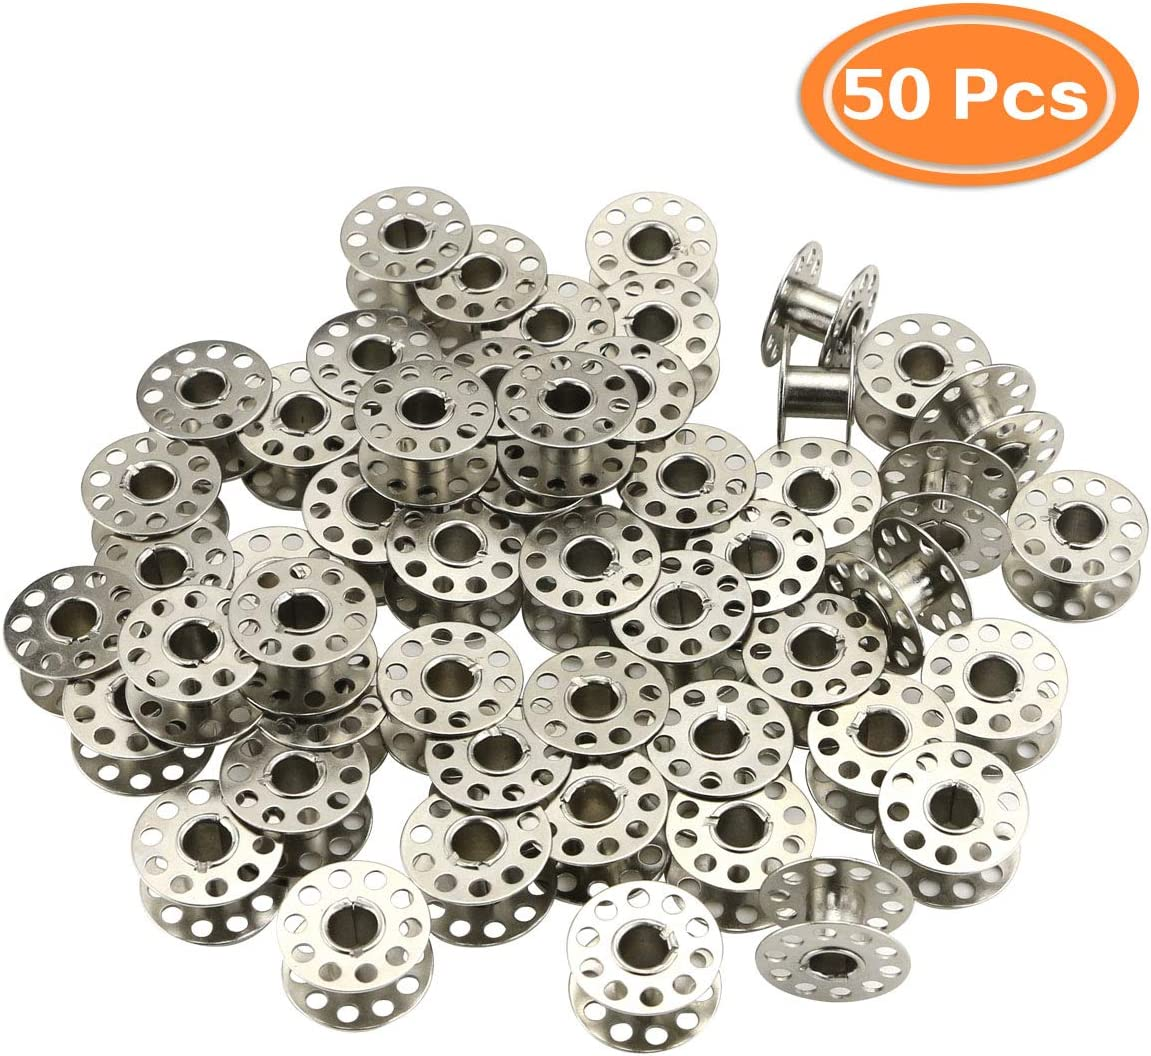 Janome and Other Sewing Machines Bernina Singer Toyata Faxco 50Pcs Sewing Machine Bobbins Metal Bobbin Replacement Accessories for Brother